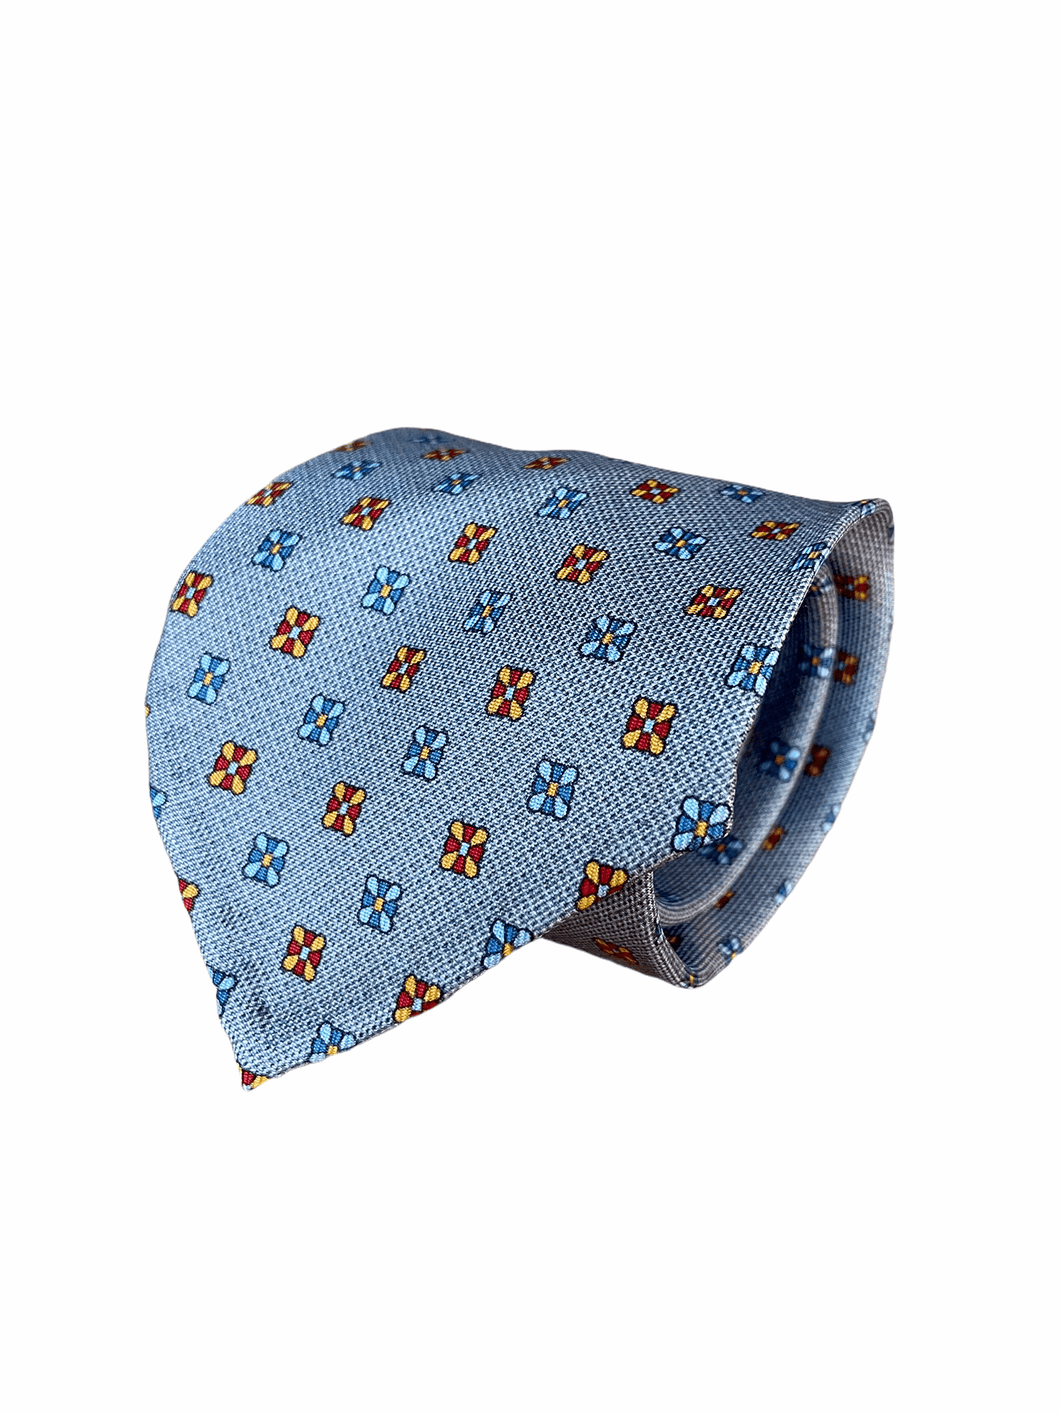 Silk tie with a floral print